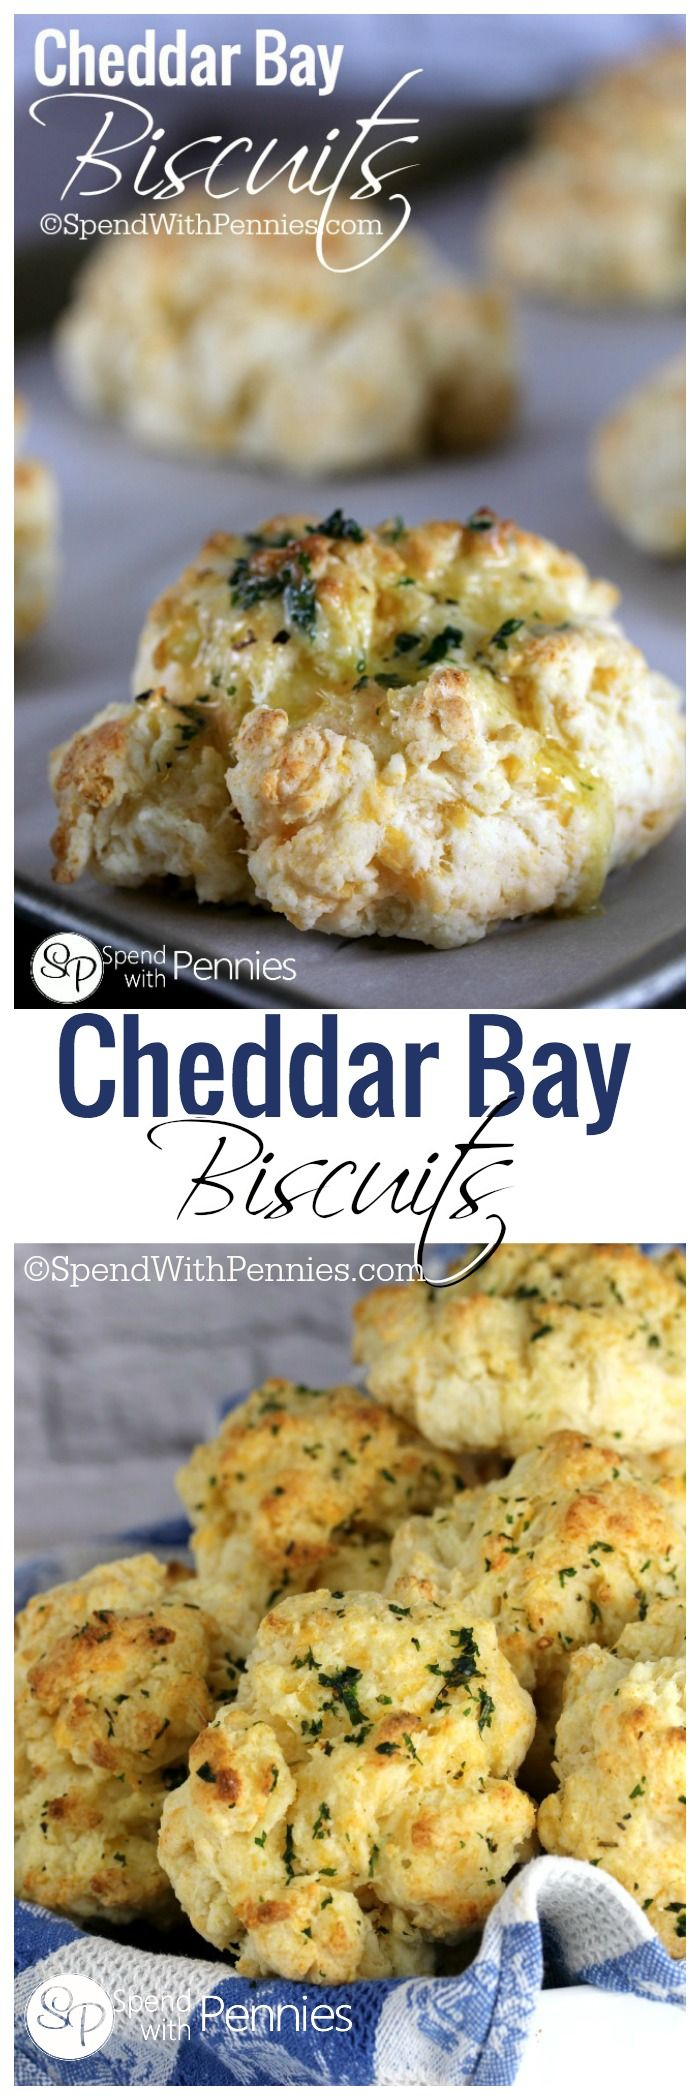 Cheddar Bay Biscuits two ways!  Deliciously fluffy, buttery and garlicky!  These are a snap to make!